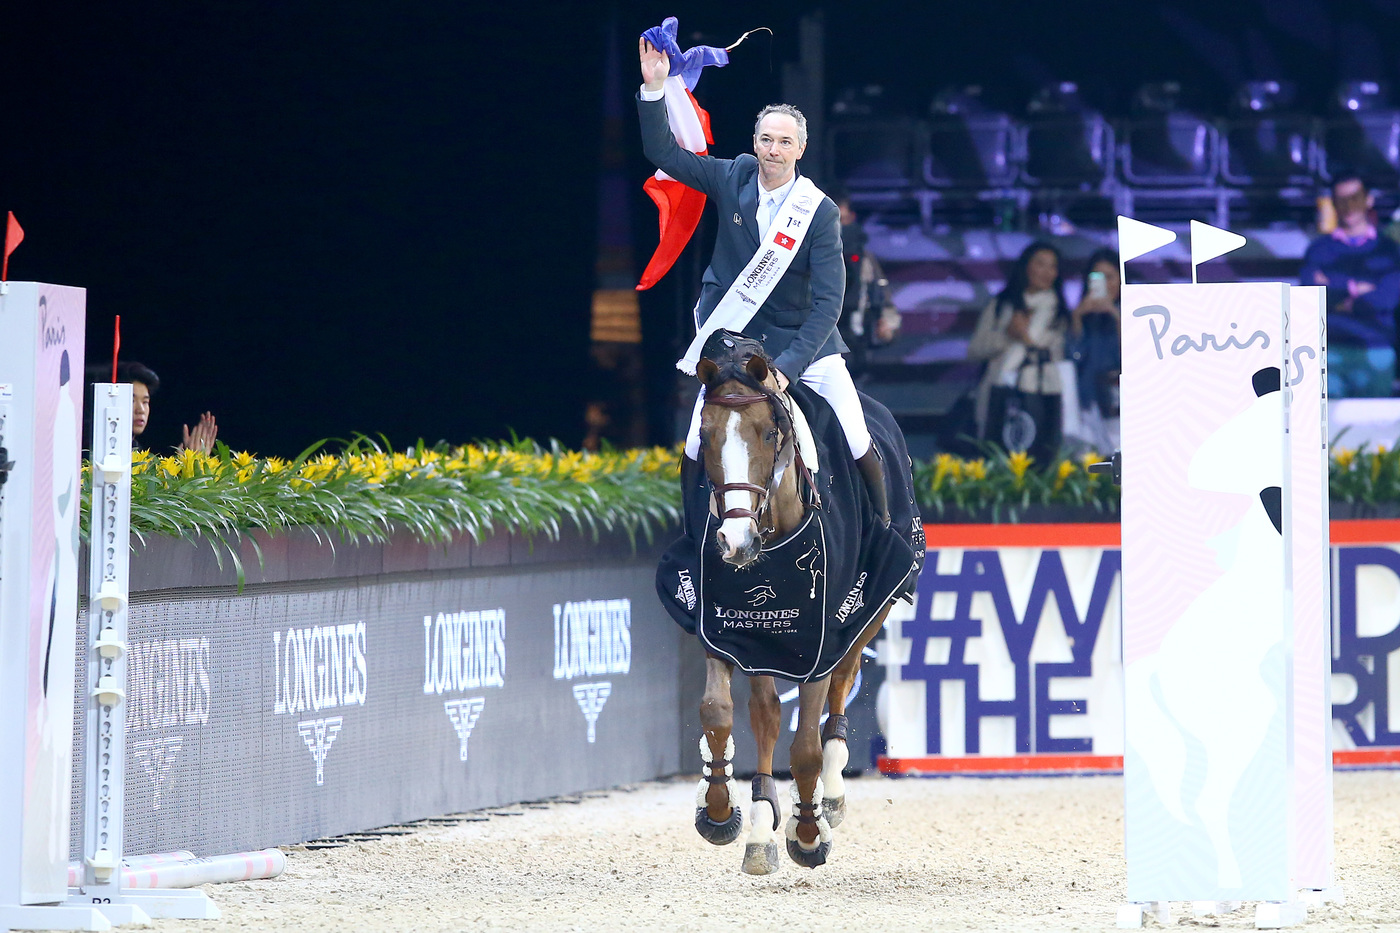 Longines Show Jumping Event: The Longines Masters of Hong Kong: Patrice Delaveau on Aquila HDC takes top class Longines Grand Prix win 1